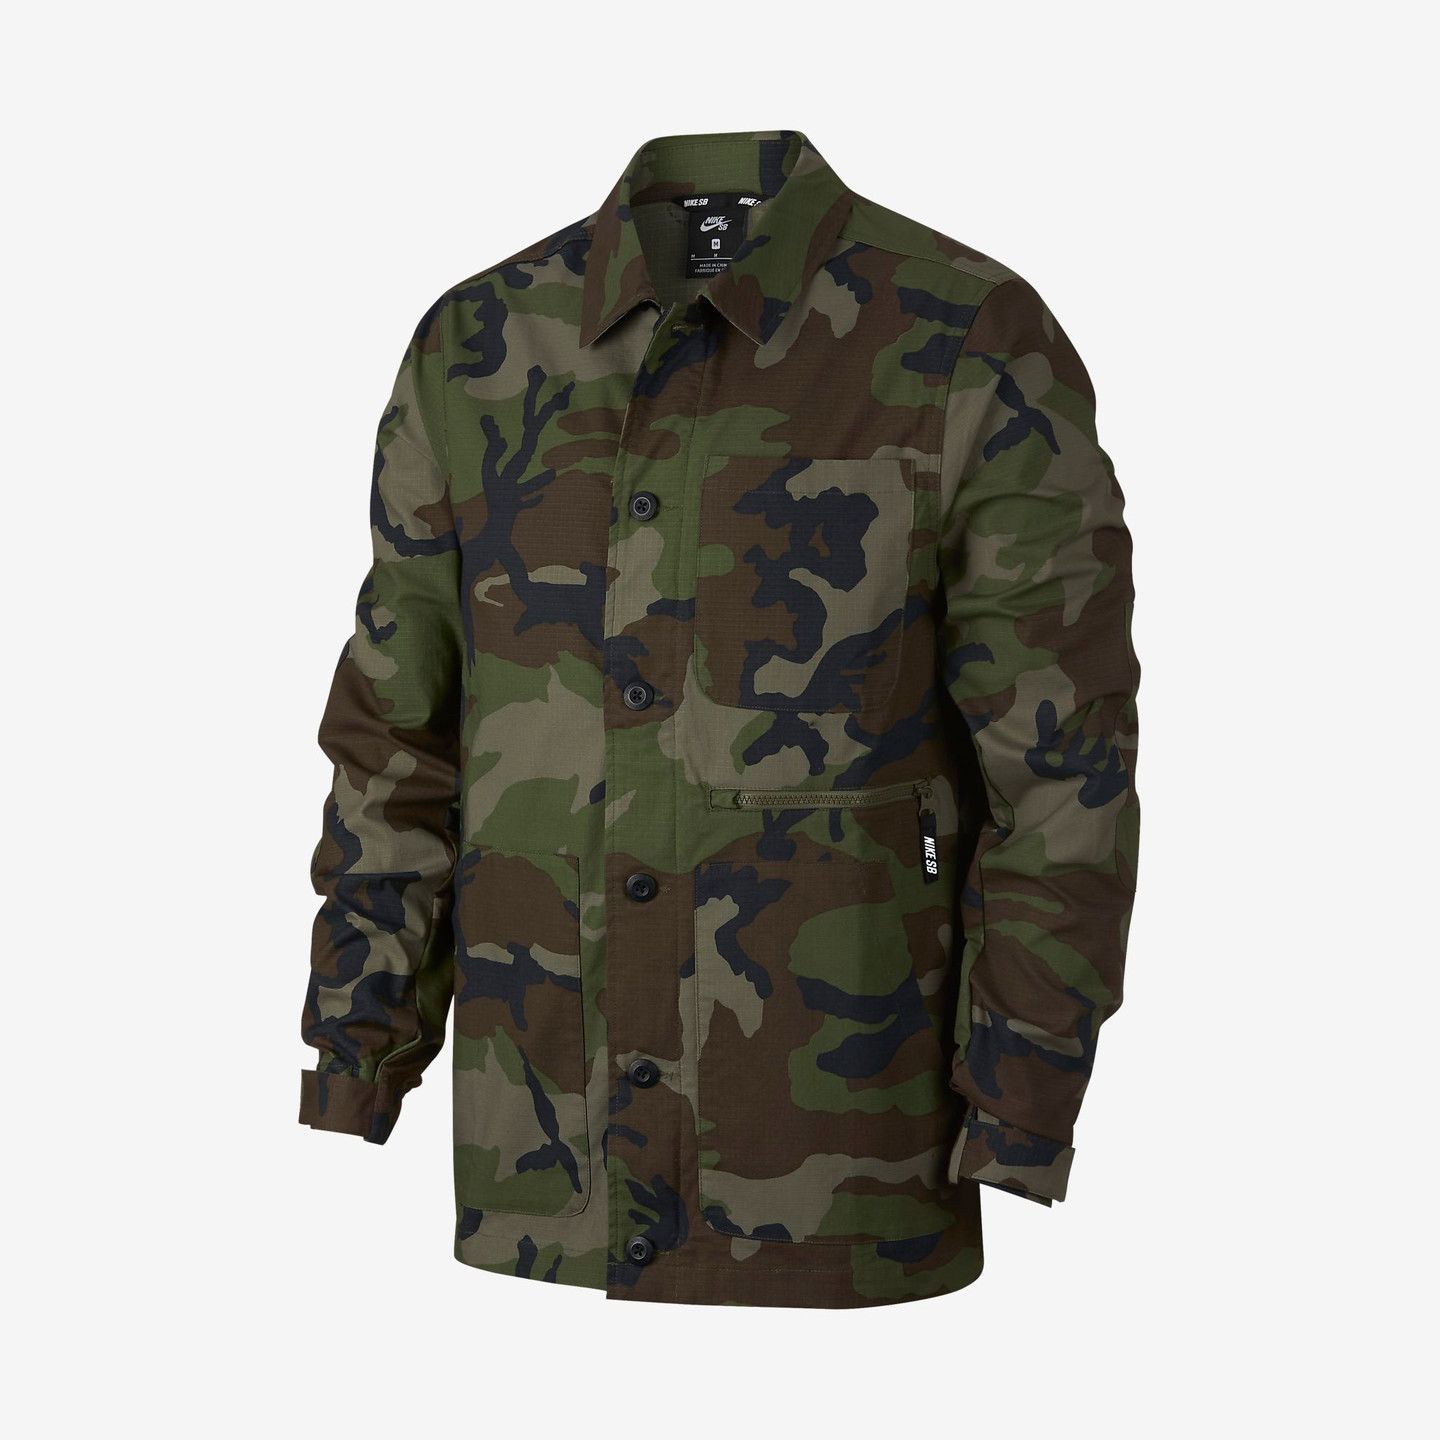 Nike SB Dri-FIT Flex Field Jacket Camouflage AH2331-222